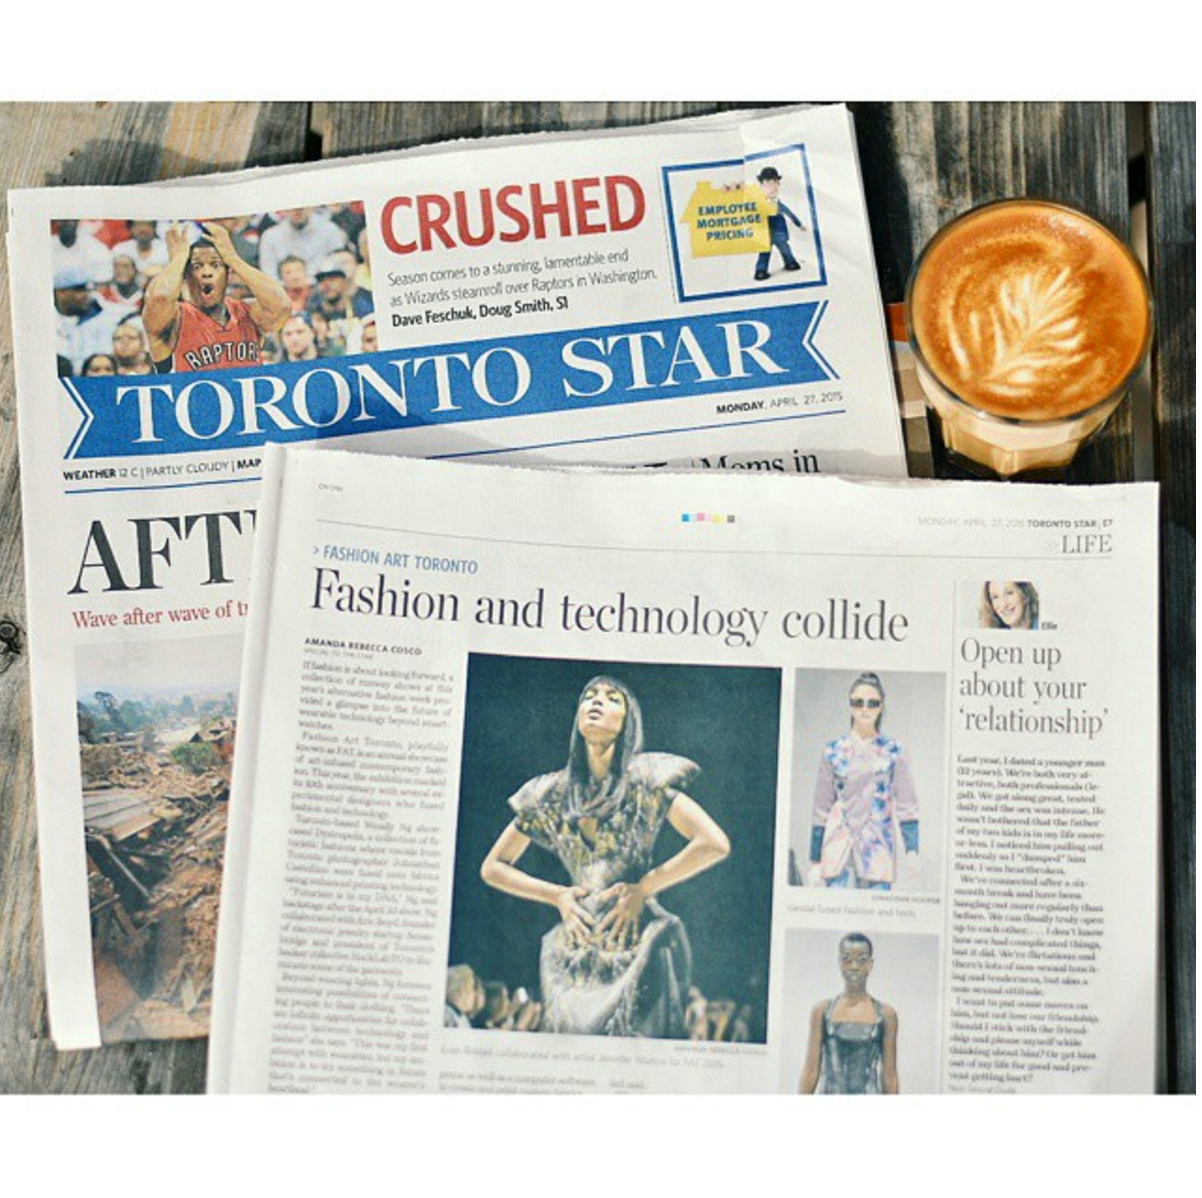 My very first article for the Toronto Star